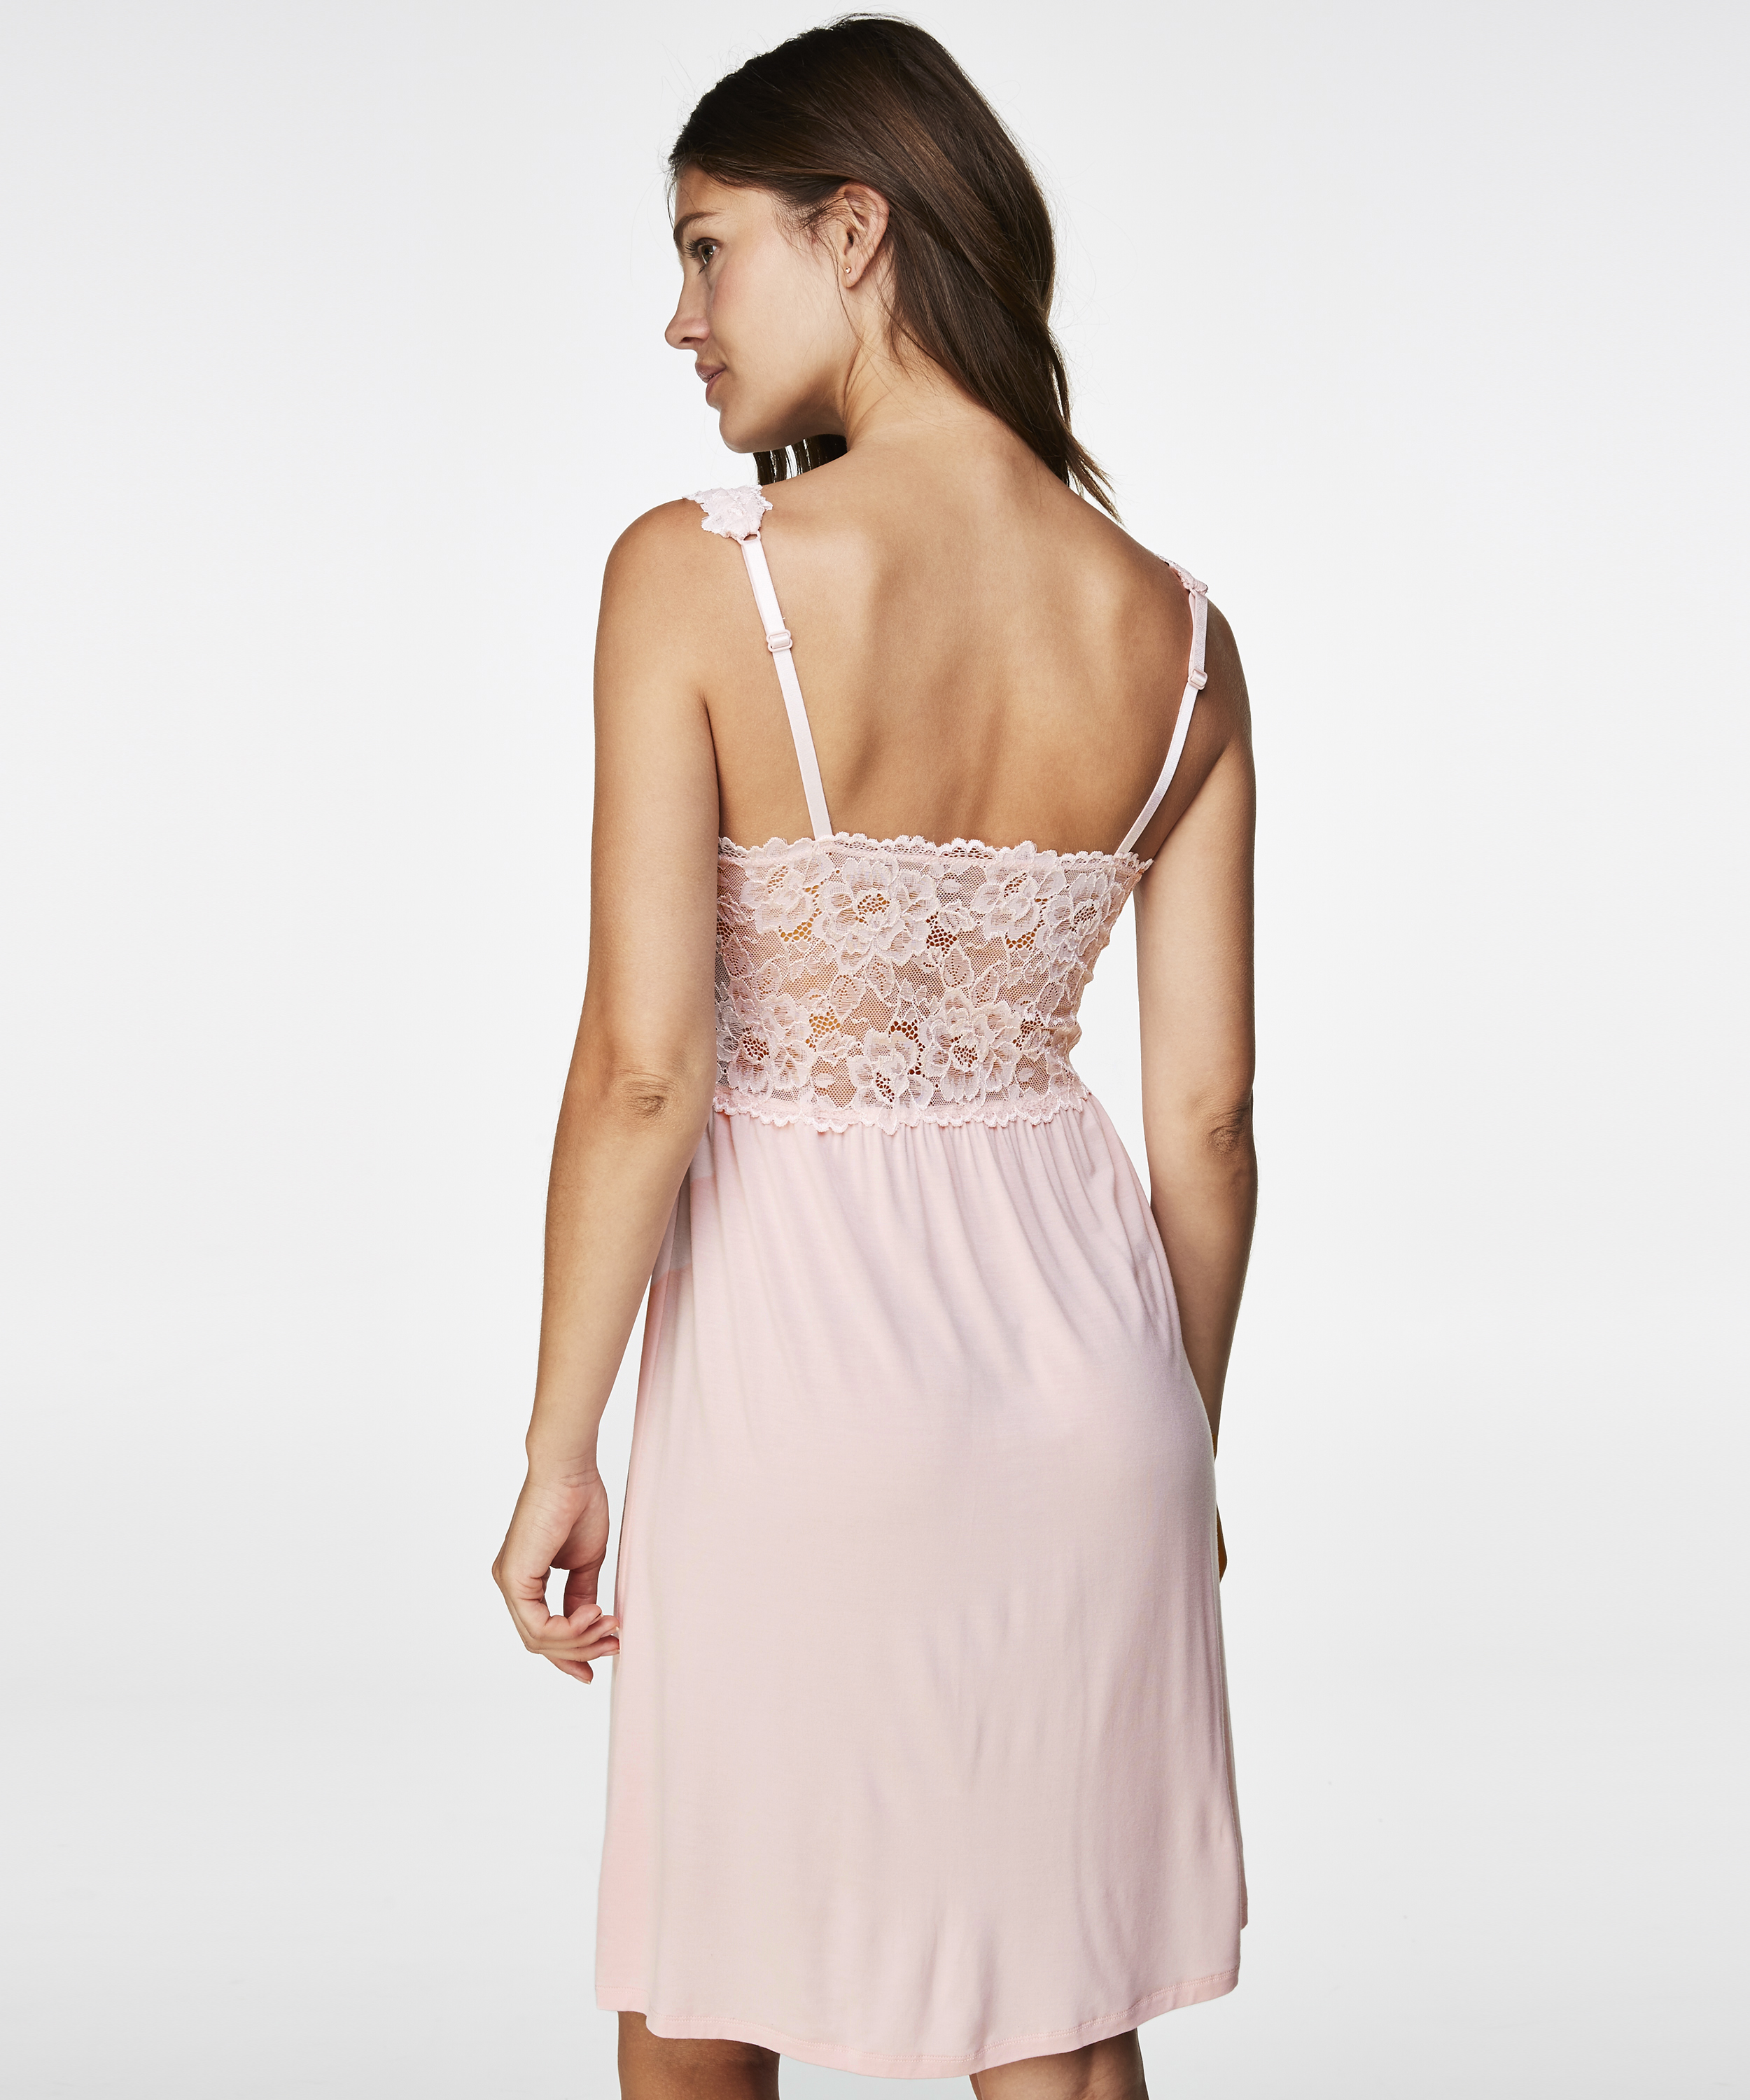 Slipdress Modal lace, Roze, main